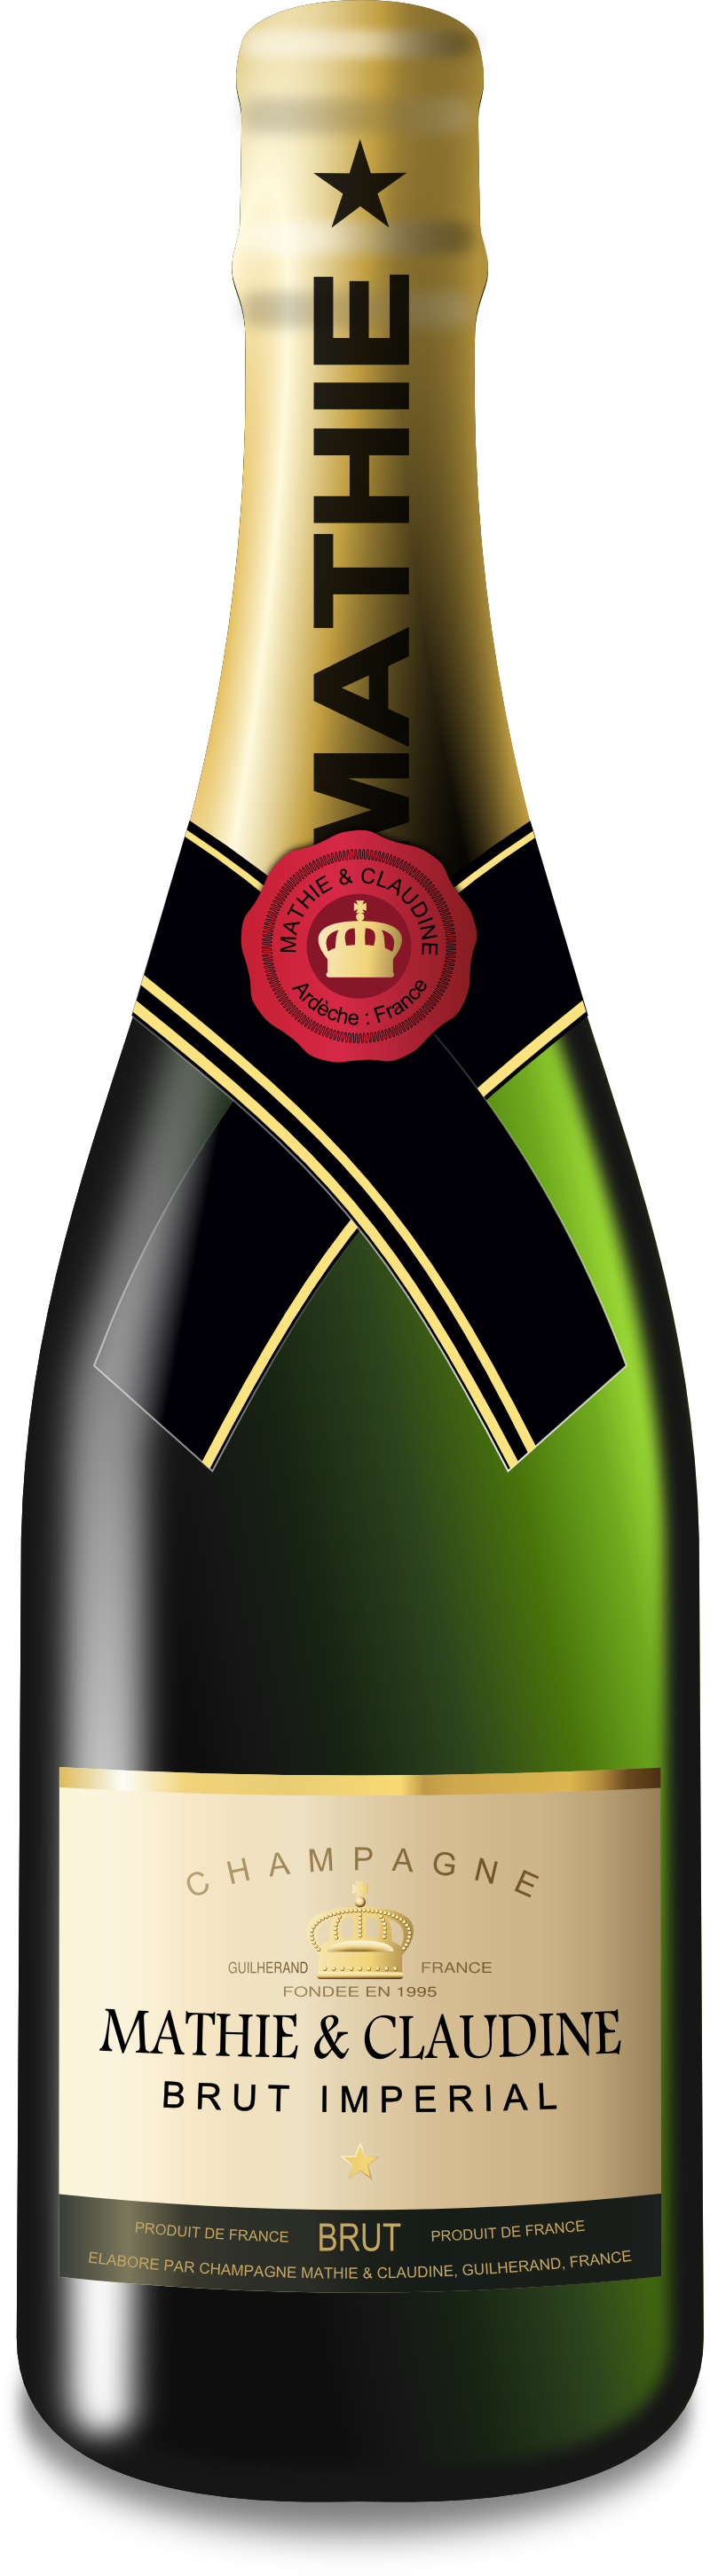 Drinking clipart champagne. Bottle png images free